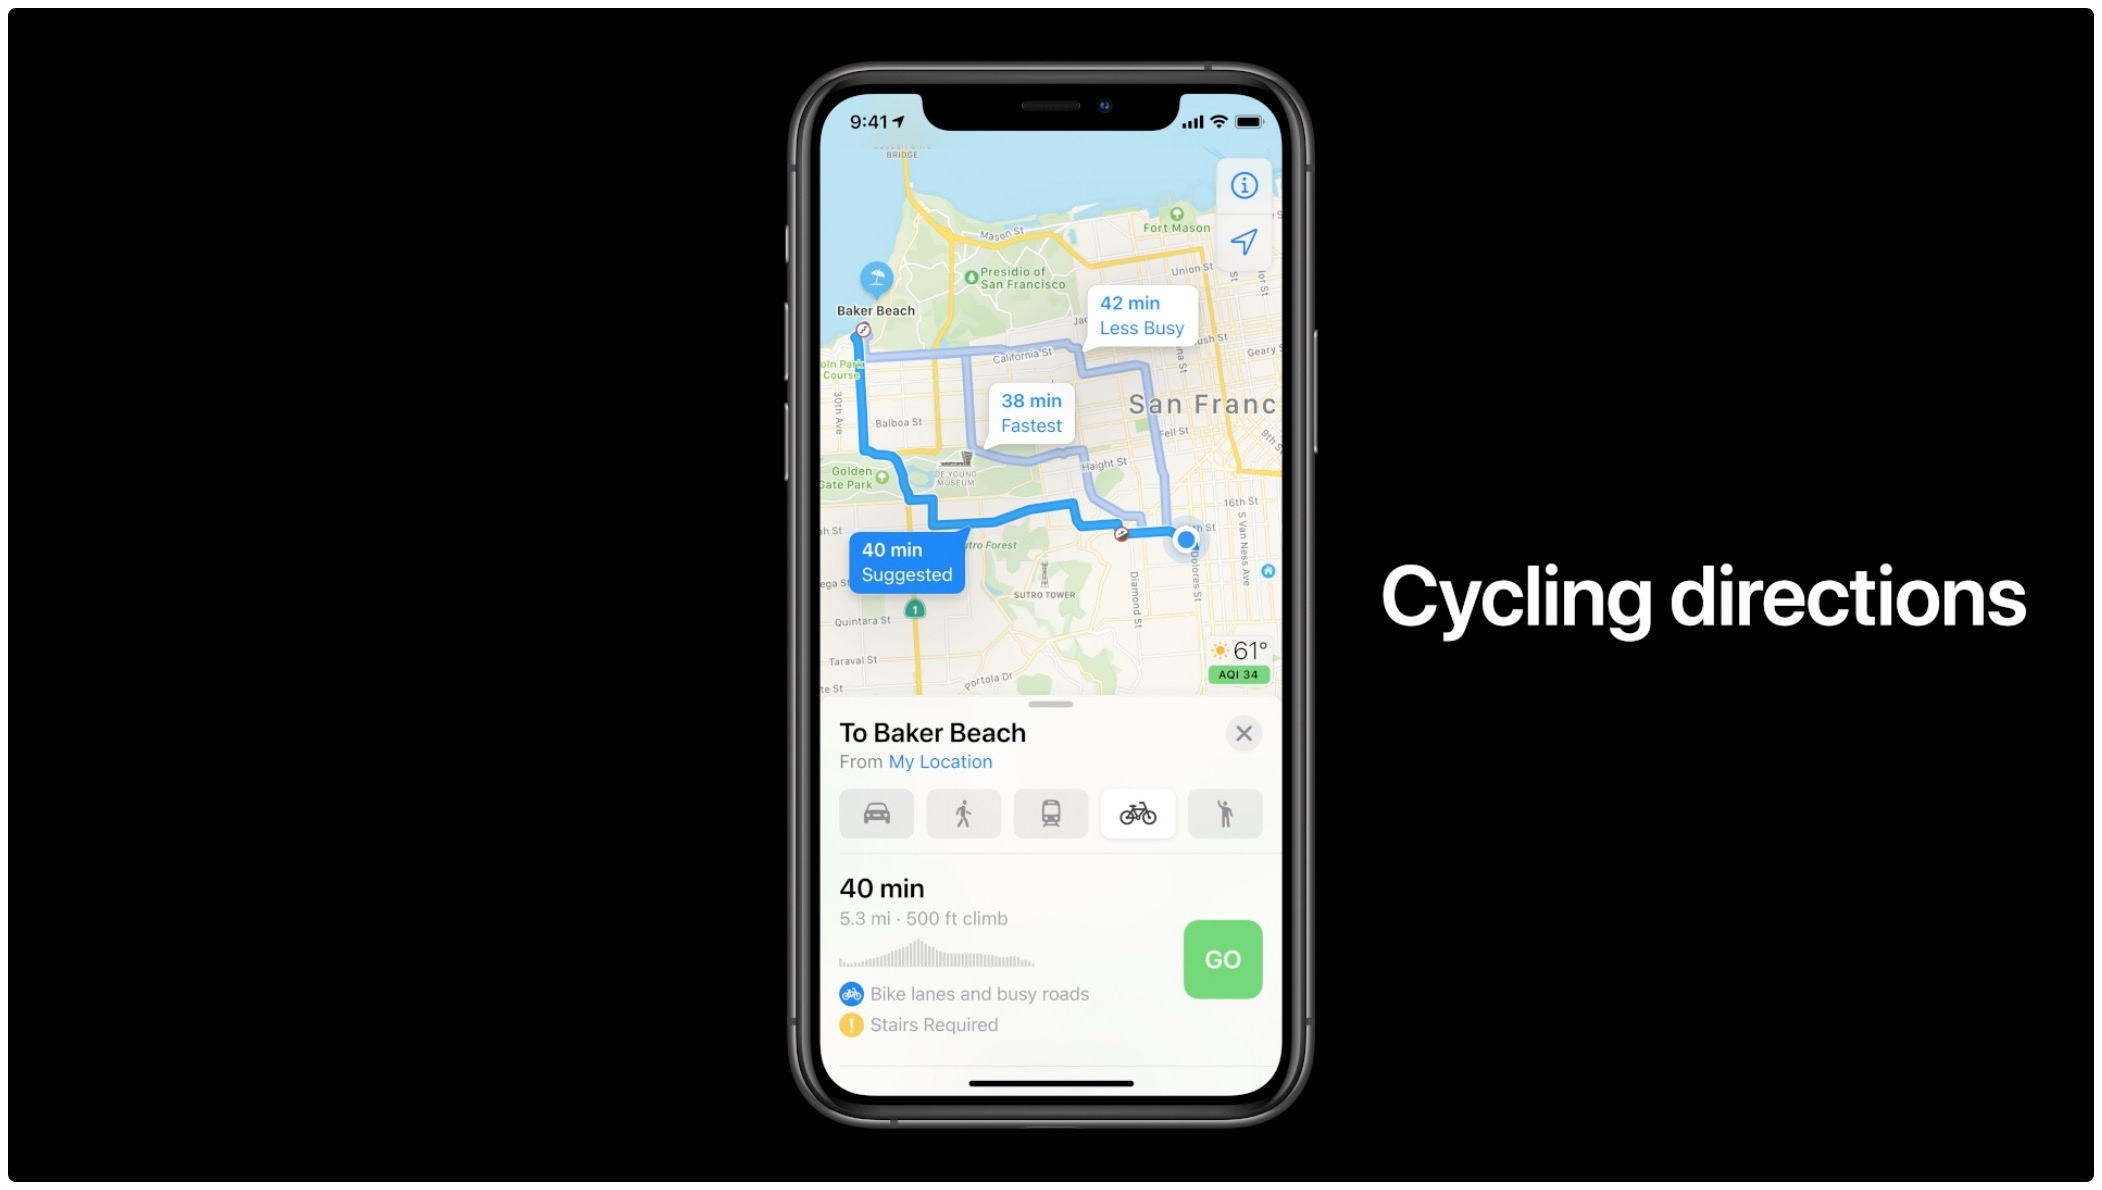 Apple Maps cycling directions - WWDC 2020 introductory slide